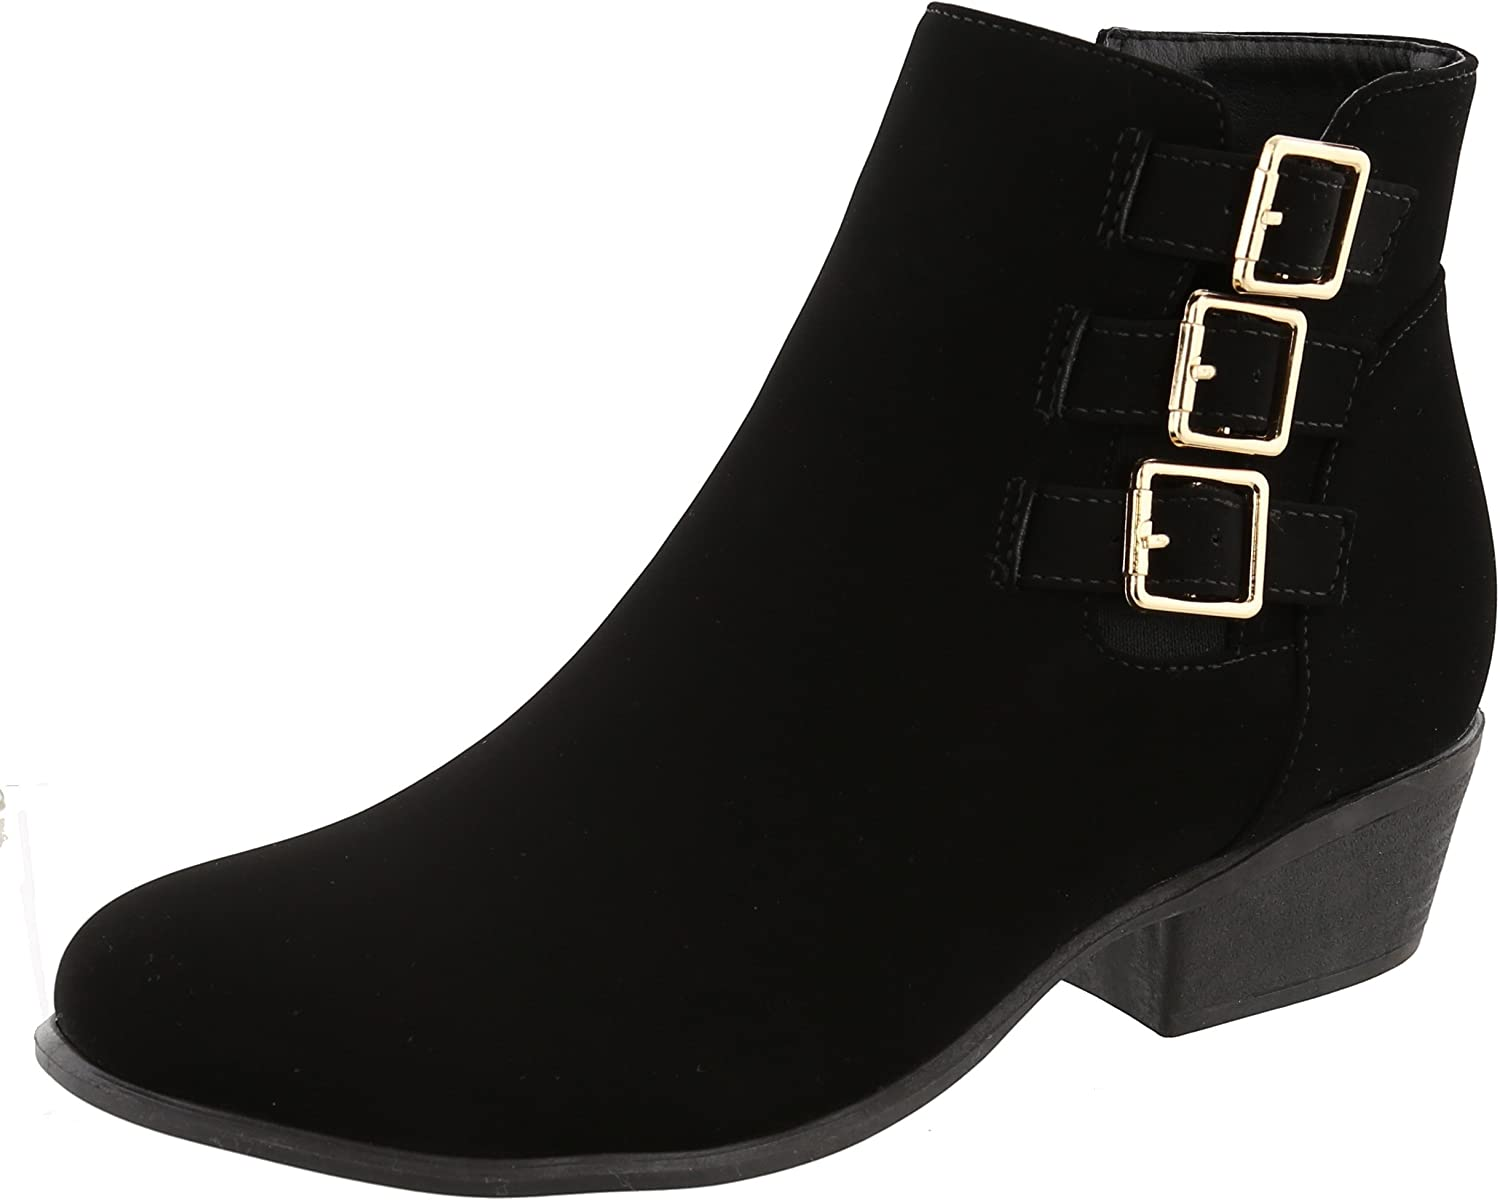 Cambridge Select Women's Western Strappy Buckle Cutout Chunky Stacked Heel Ankle Bootie